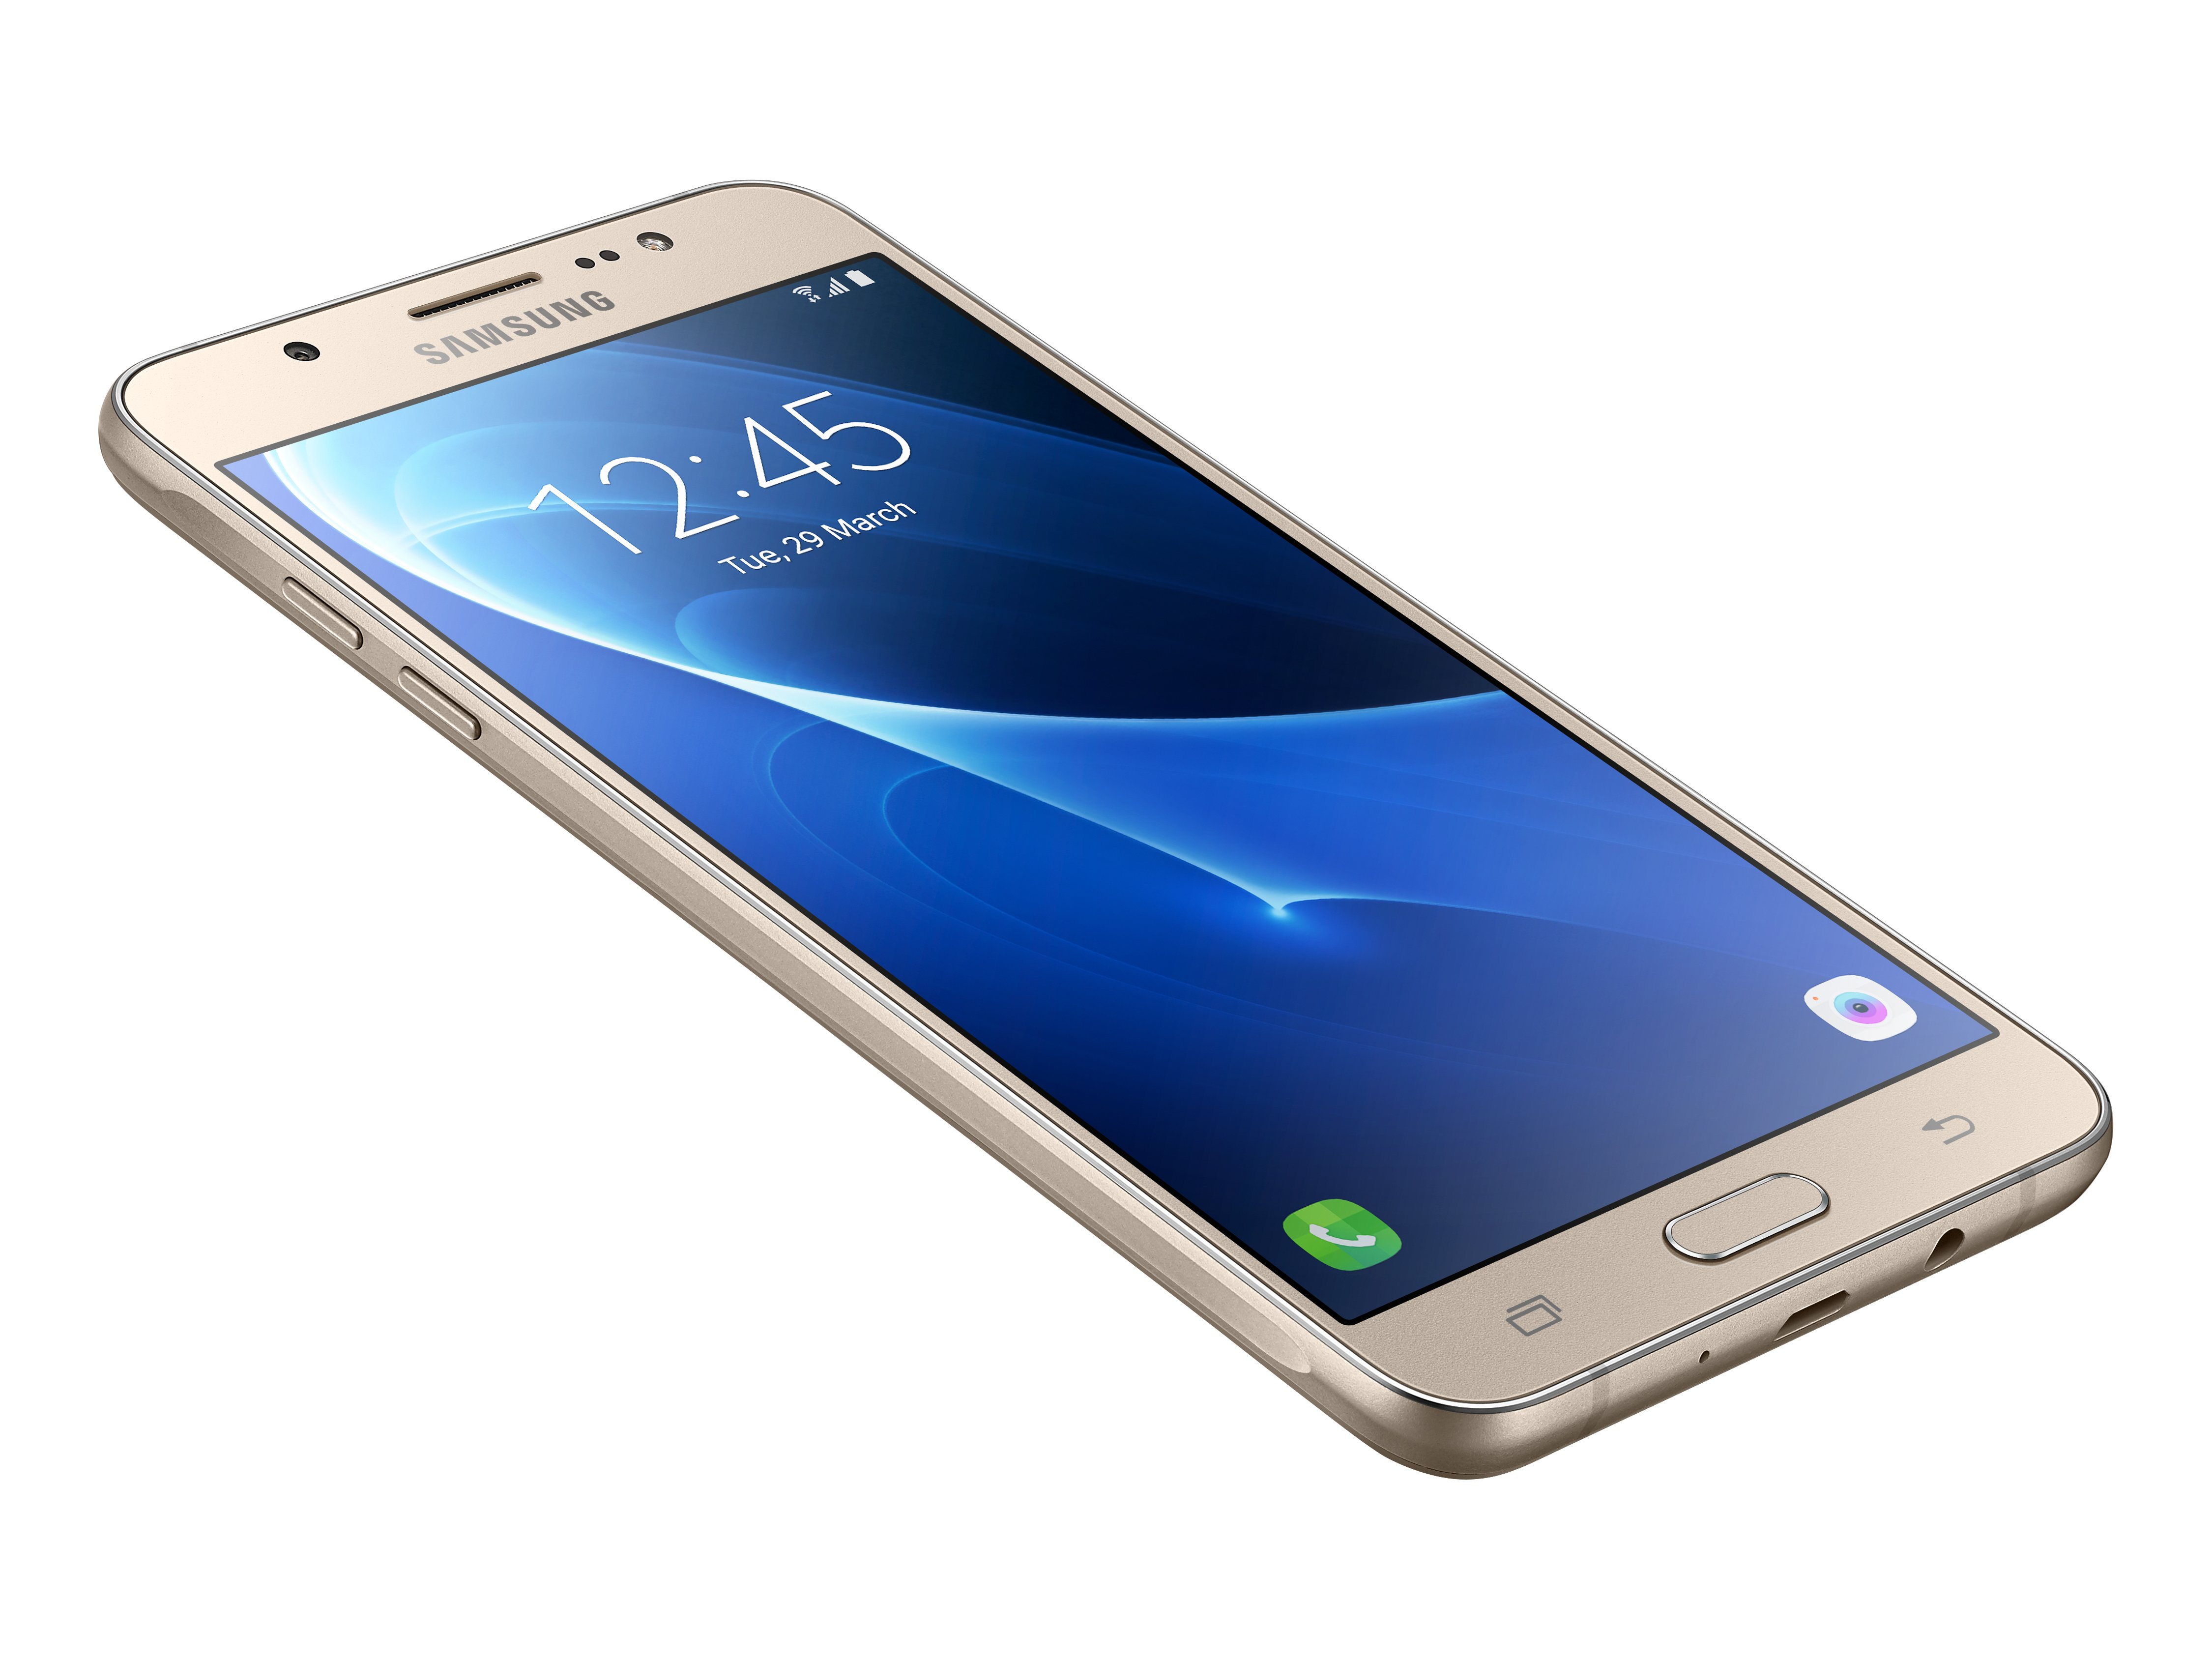 Samsung Galaxy J7 (2016) Smartphone Review - NotebookCheck